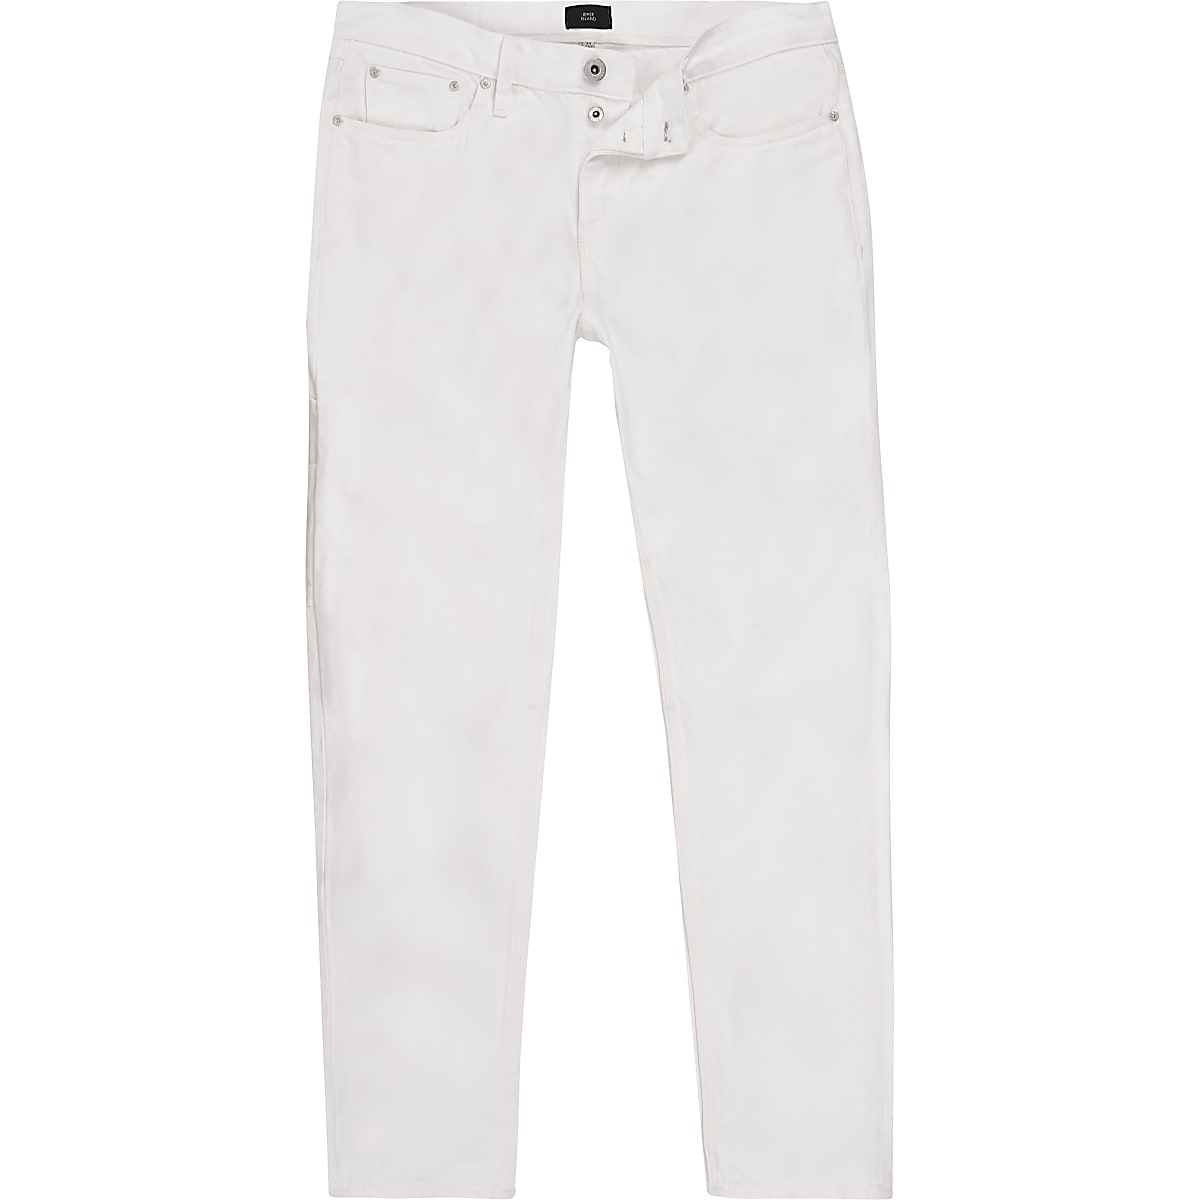 White slim fit tapered jeans